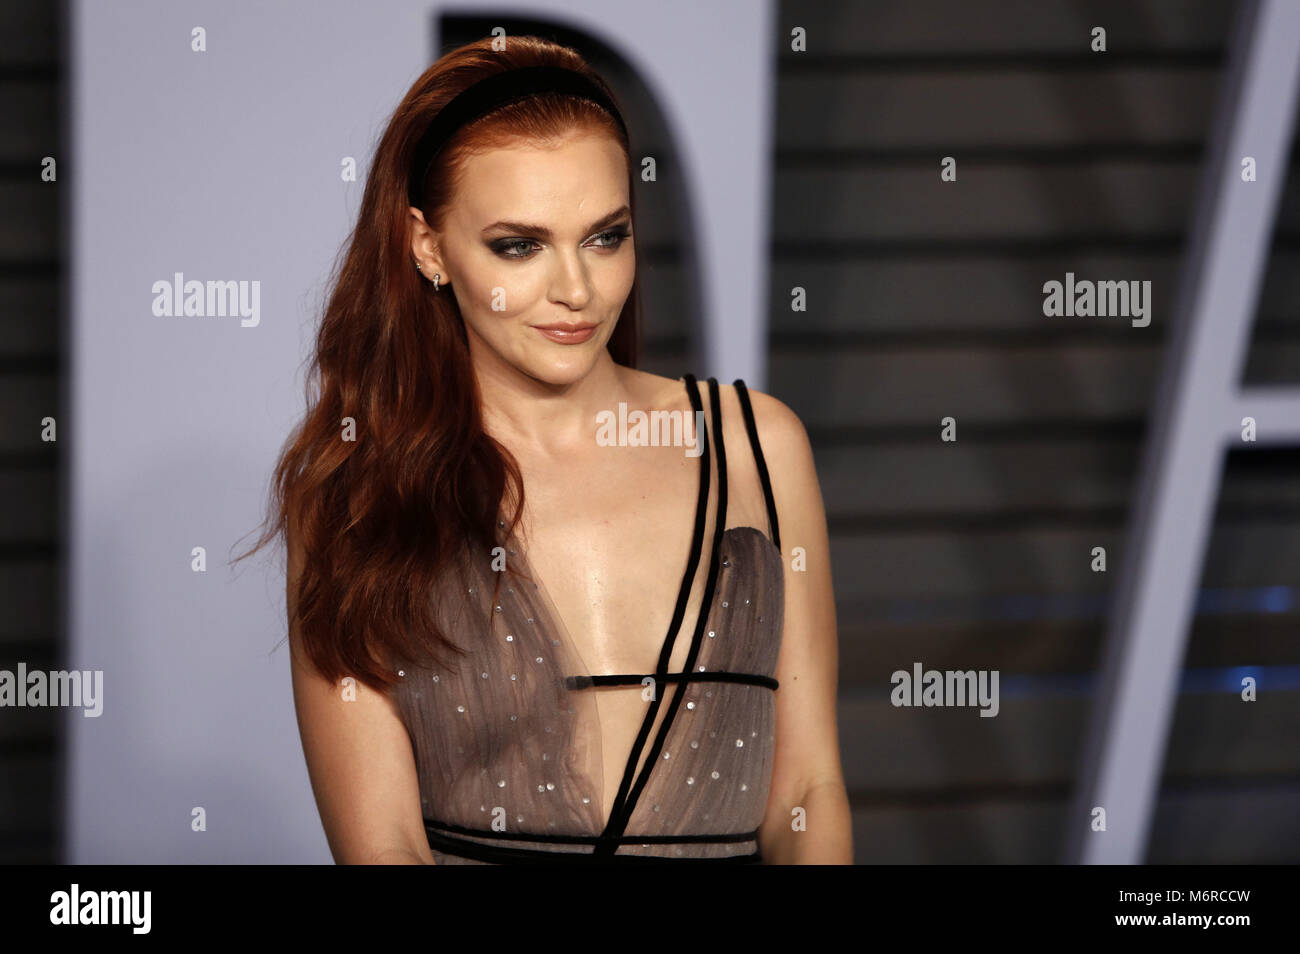 ICloud Madeline Brewer naked (85 photos), Sexy, Is a cute, Twitter, butt 2018